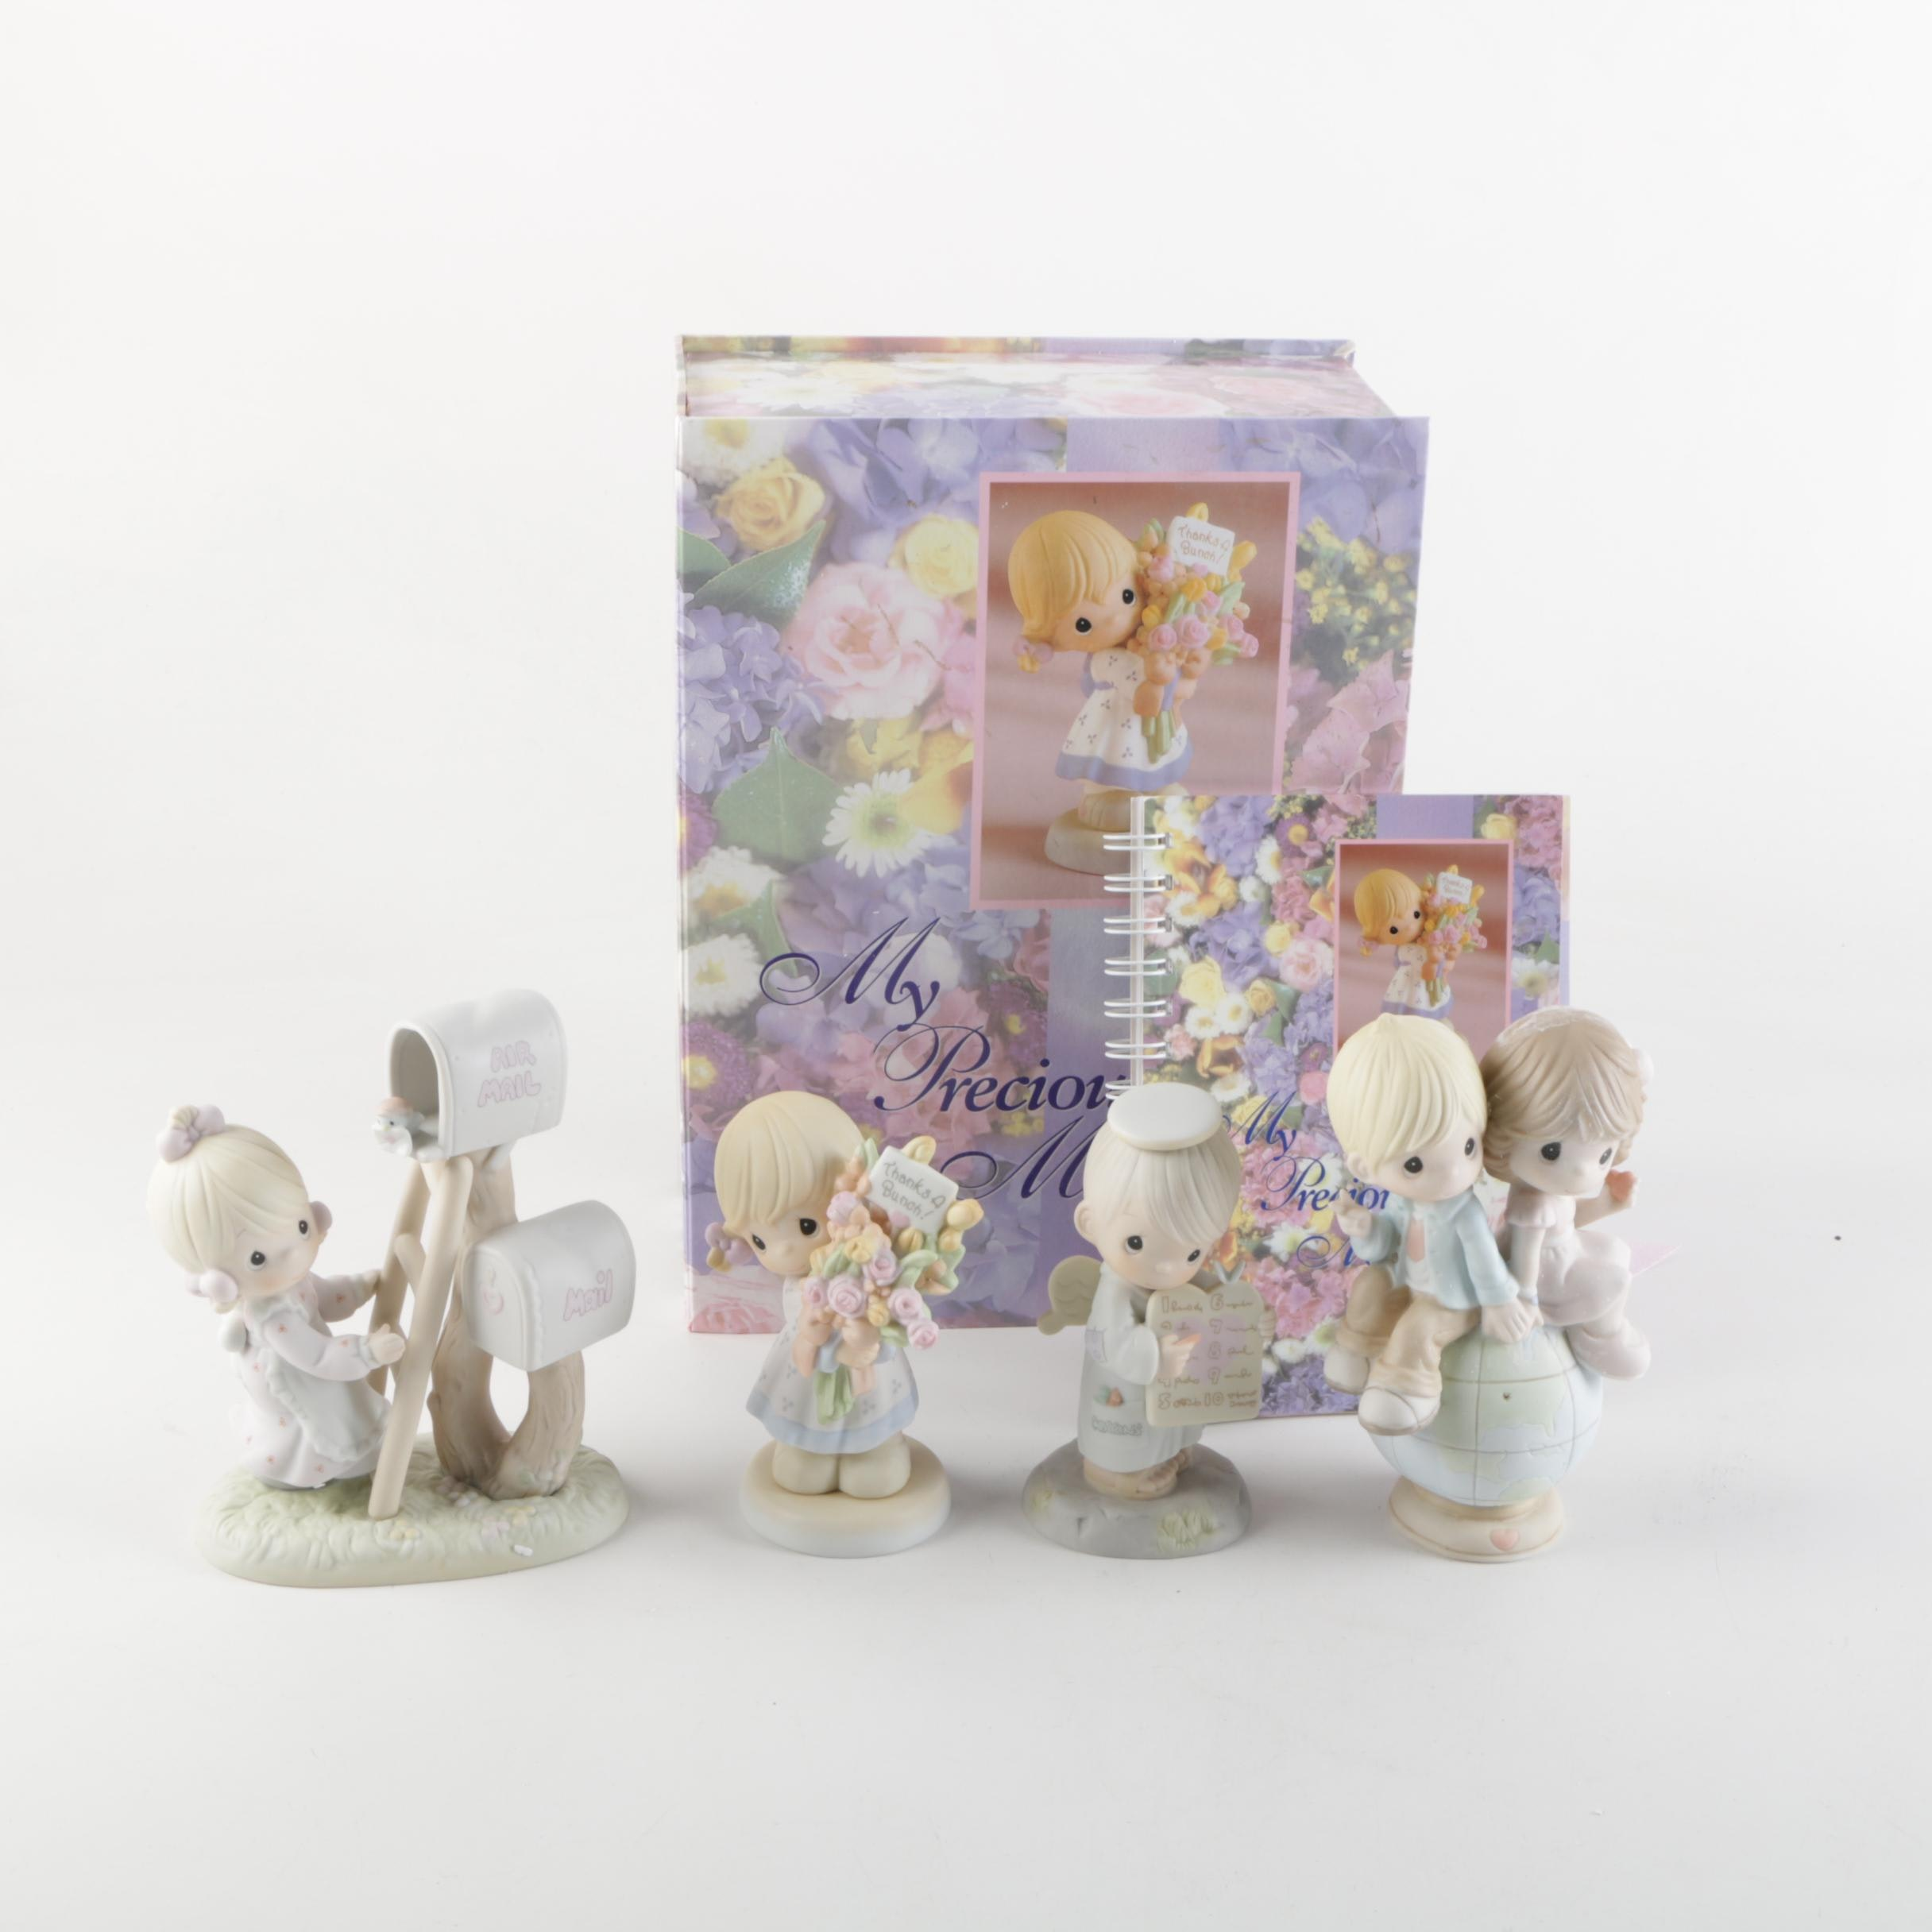 Precious Moments Figurines with a Box and Booklet